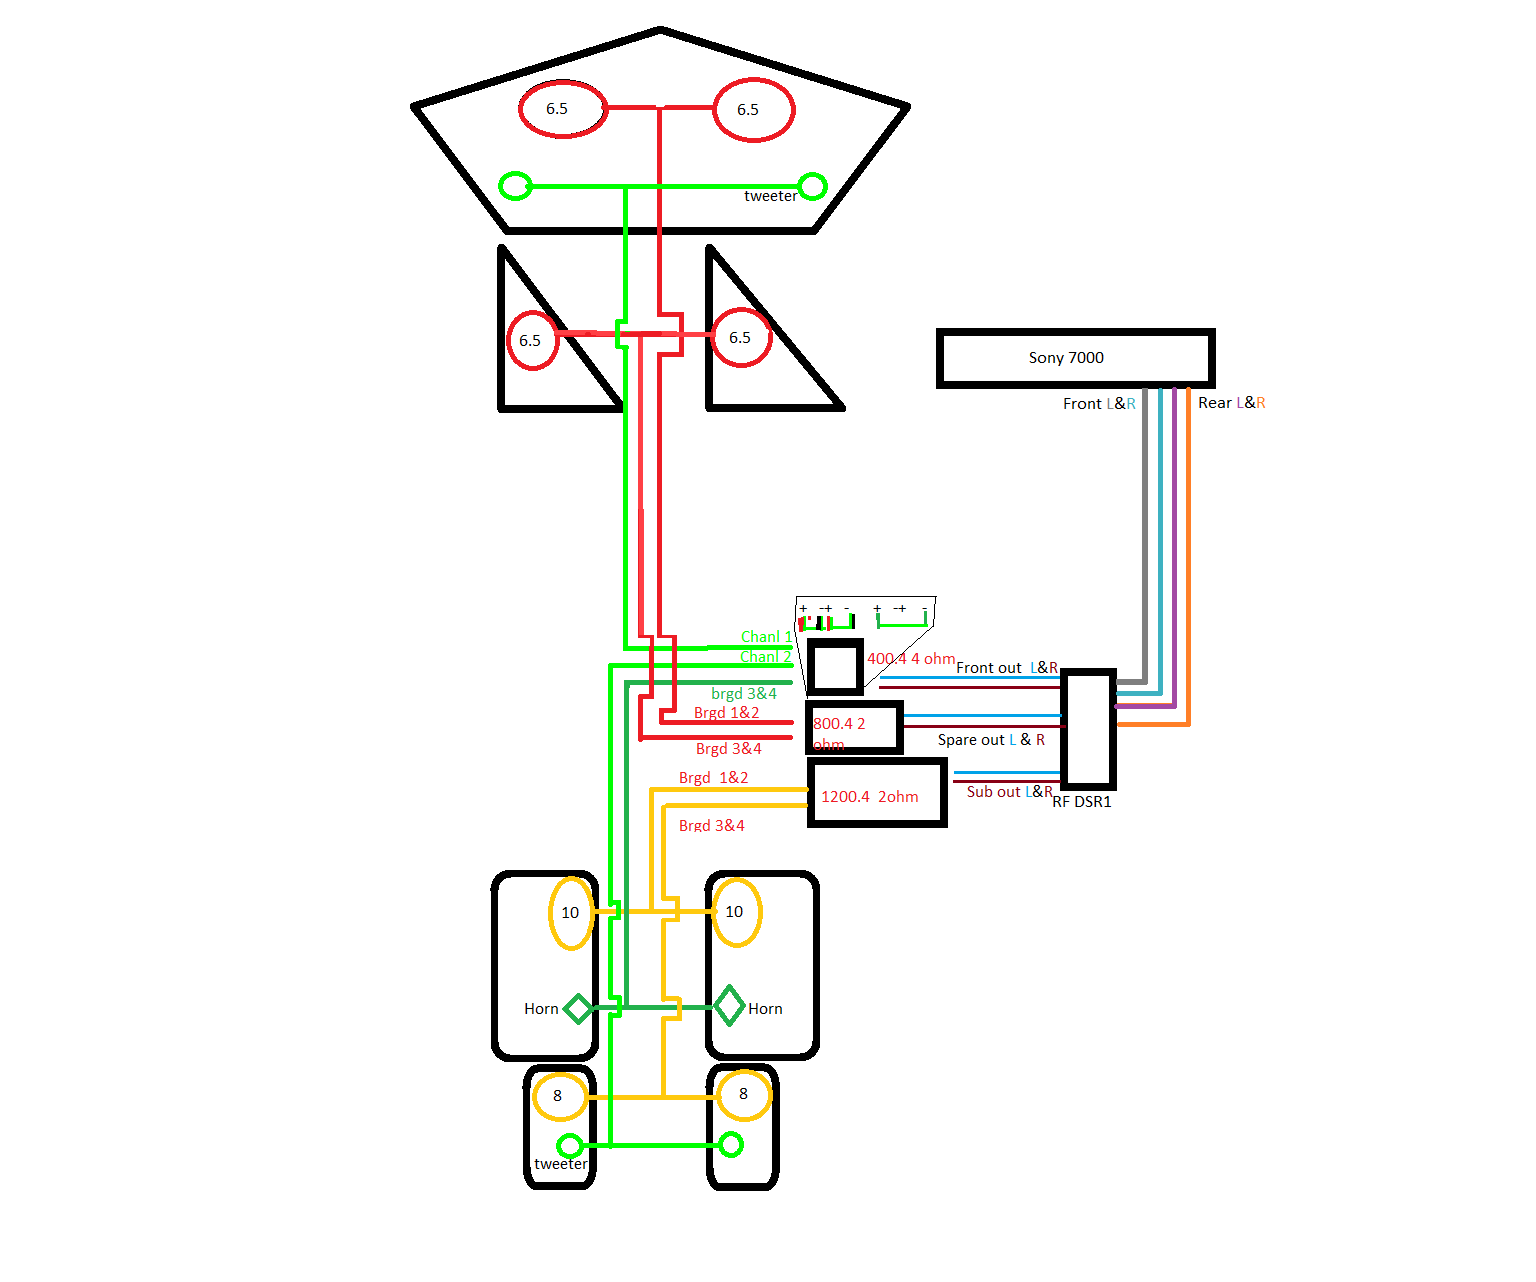 Look At This Diagram Of My Set Up       - Page 2